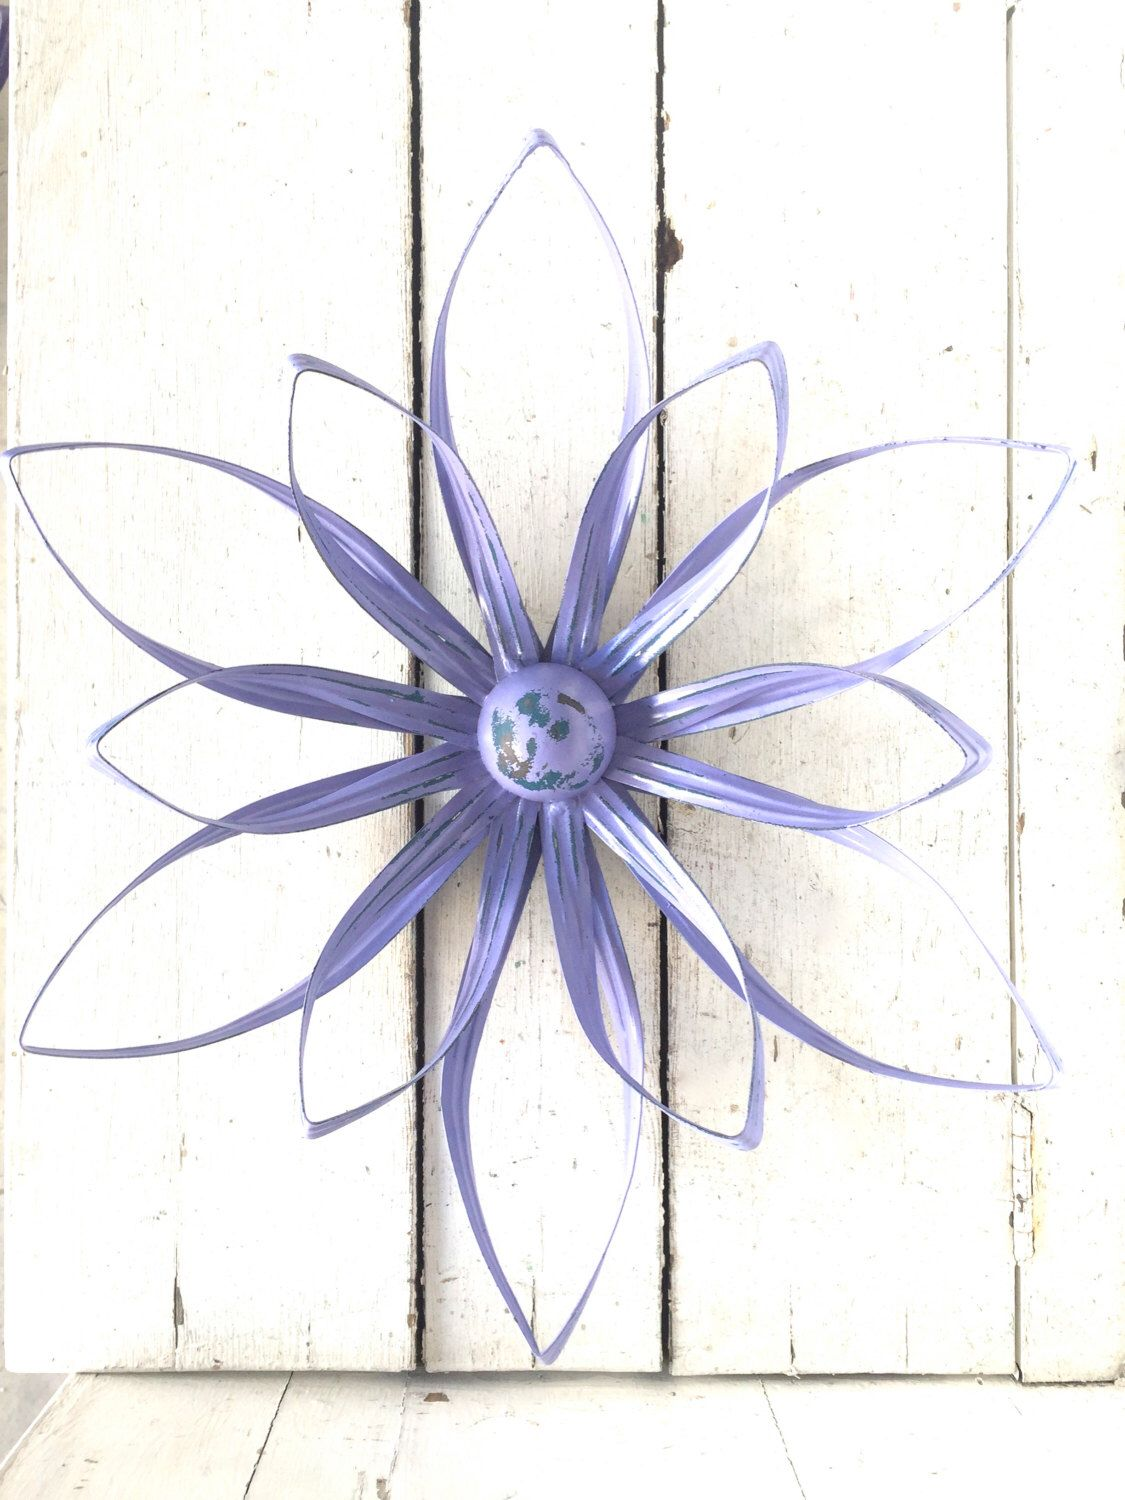 Flower Wall Art, Flower Decor, Metal Flower Art, Metal Wall Decor ...